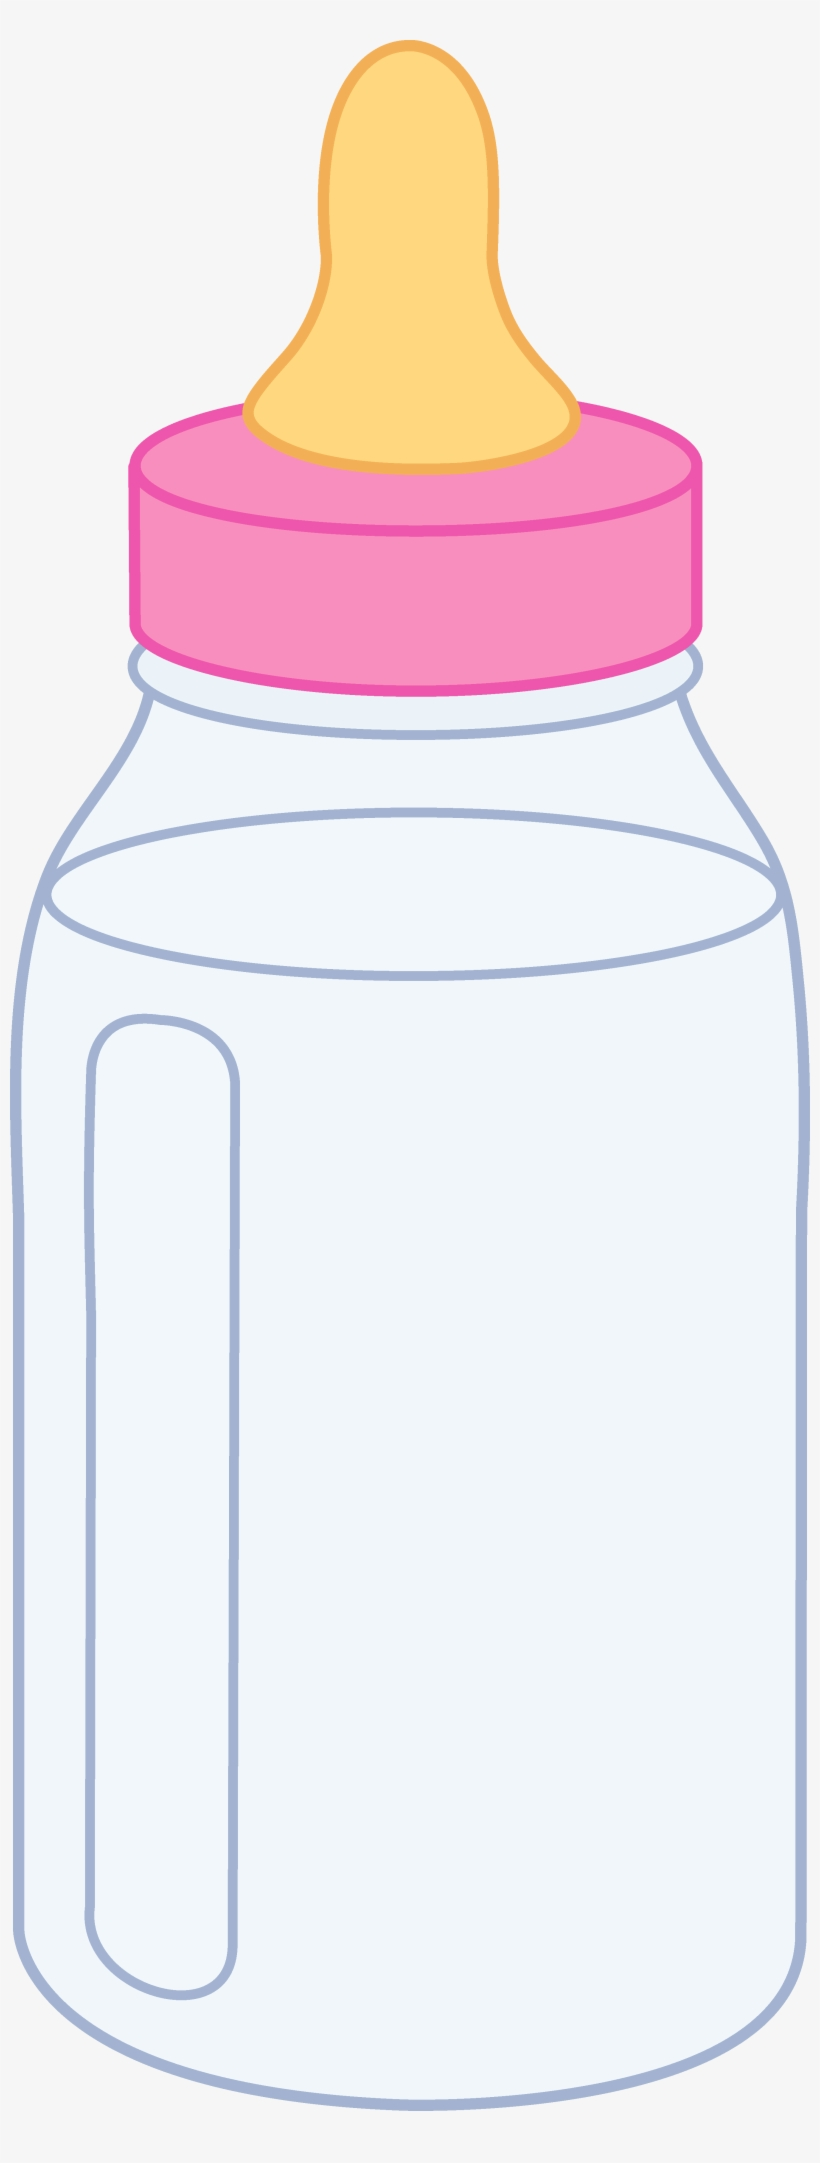 Pink Baby Bottle Clipart.